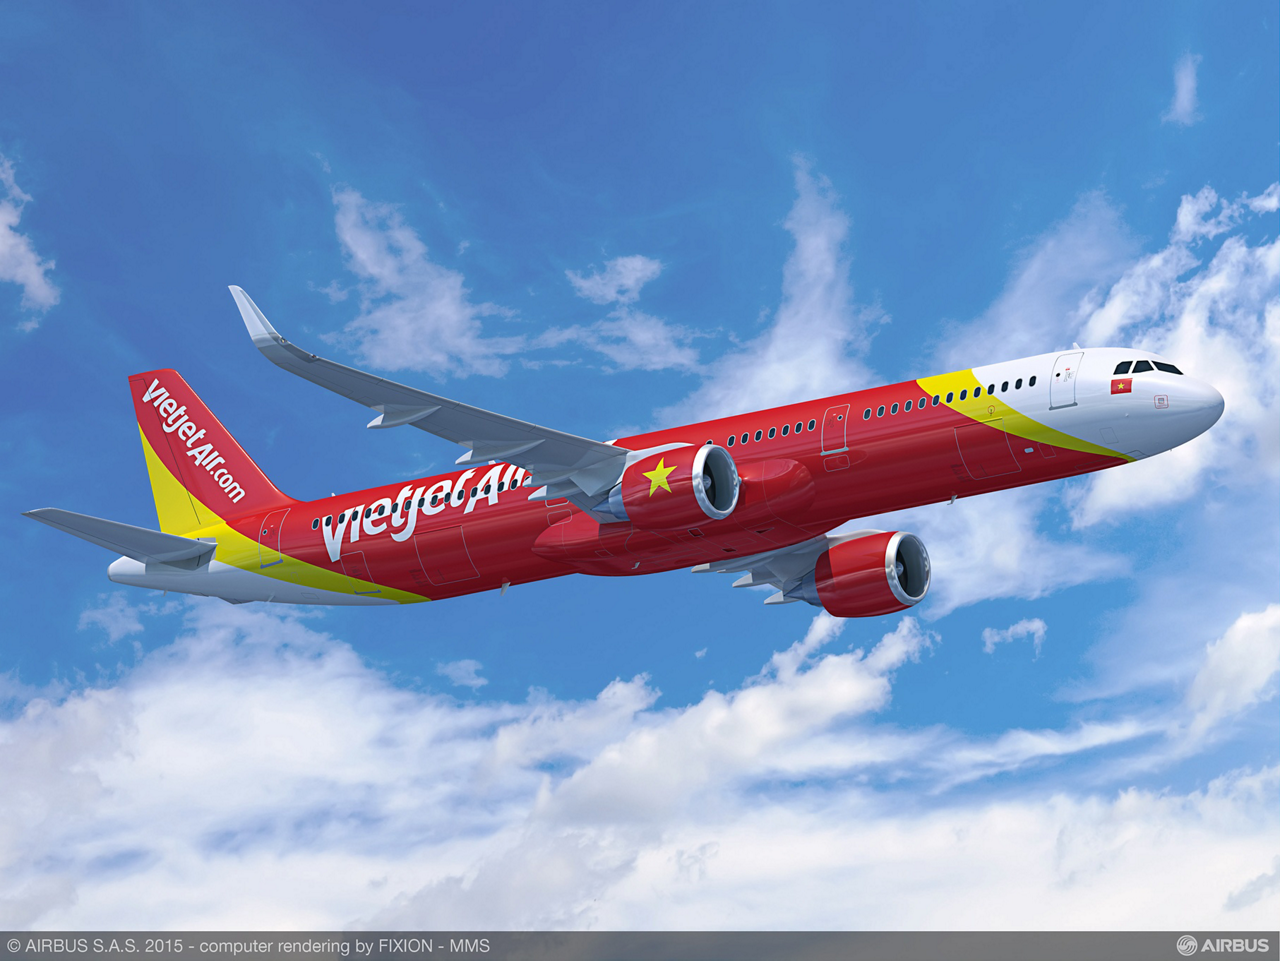 With Vietjet's memorandum of understanding for an 50 additional A321neo jetliners, signed at the 2018 Farnborough Airshow, the Vietnamese carrier's backlog of orders for Airbus A320 Family jetliners rises to 129 aircraft in the A321neo (New Engine Option) and A321ceo (Current Engine Option) versions